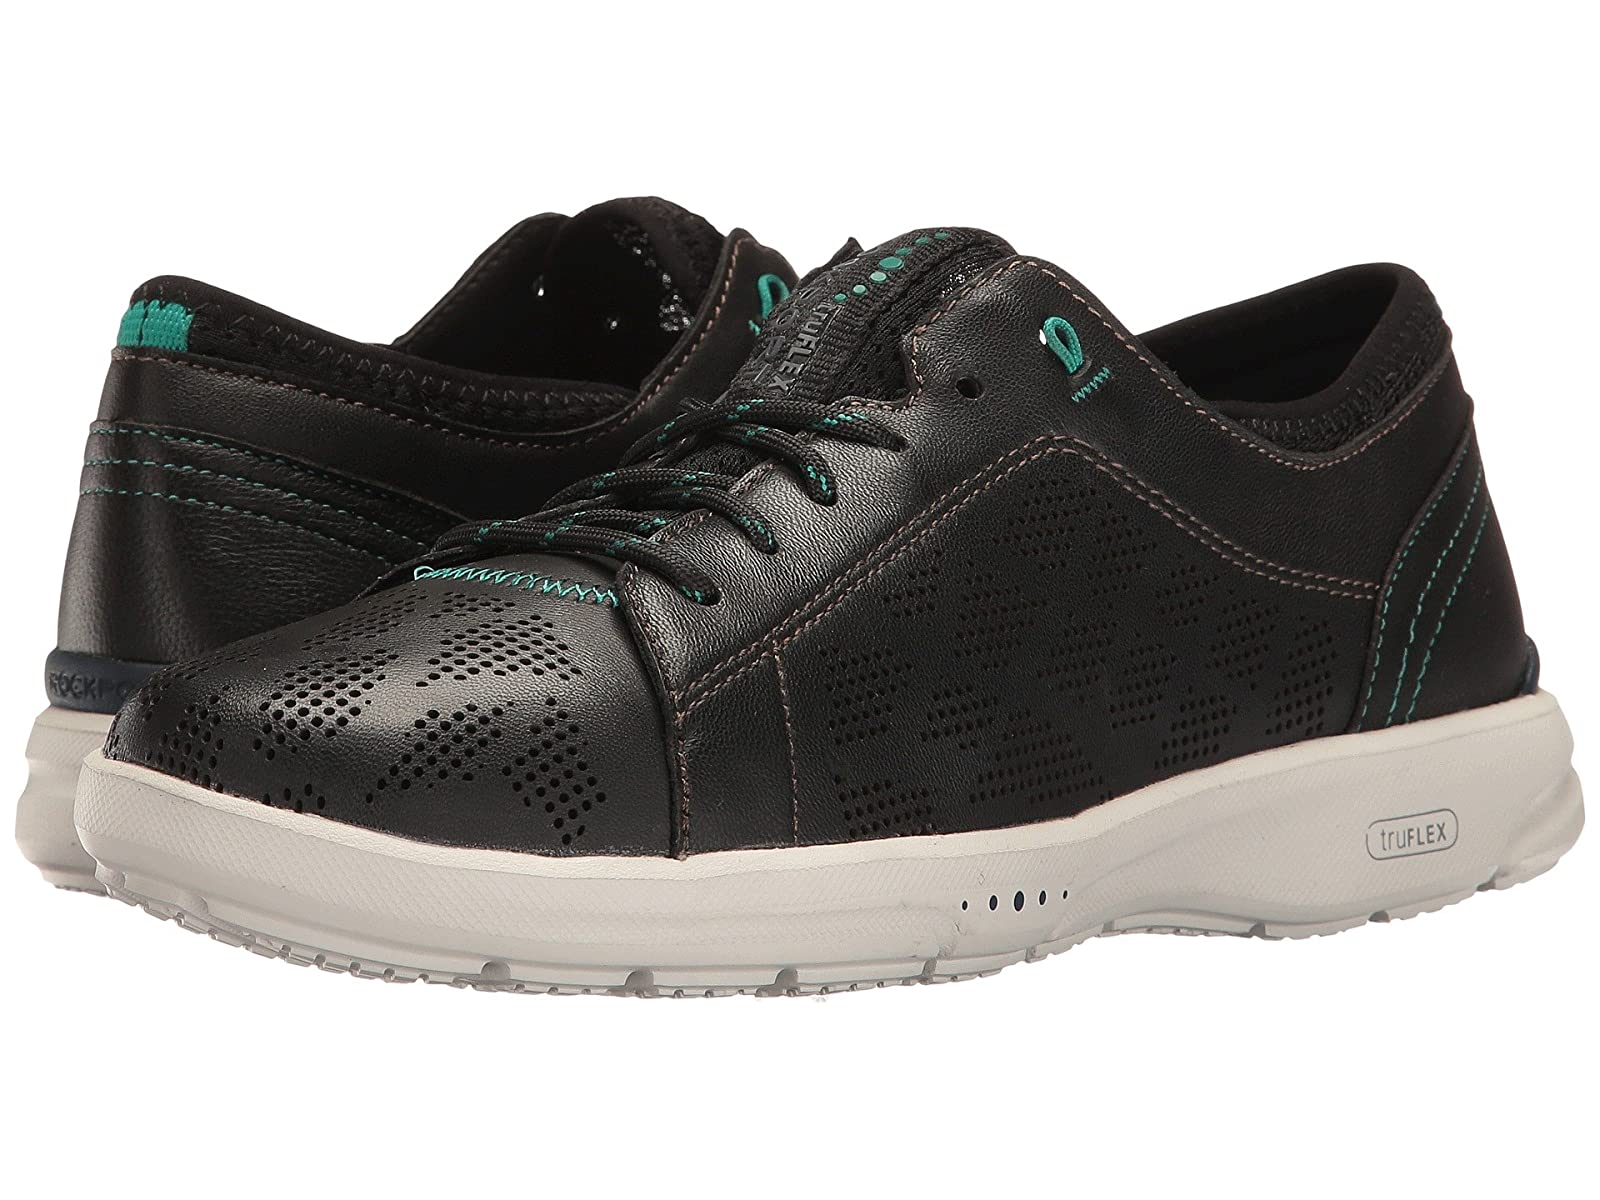 Rockport TruFlex Lace to ToeCheap and distinctive eye-catching shoes